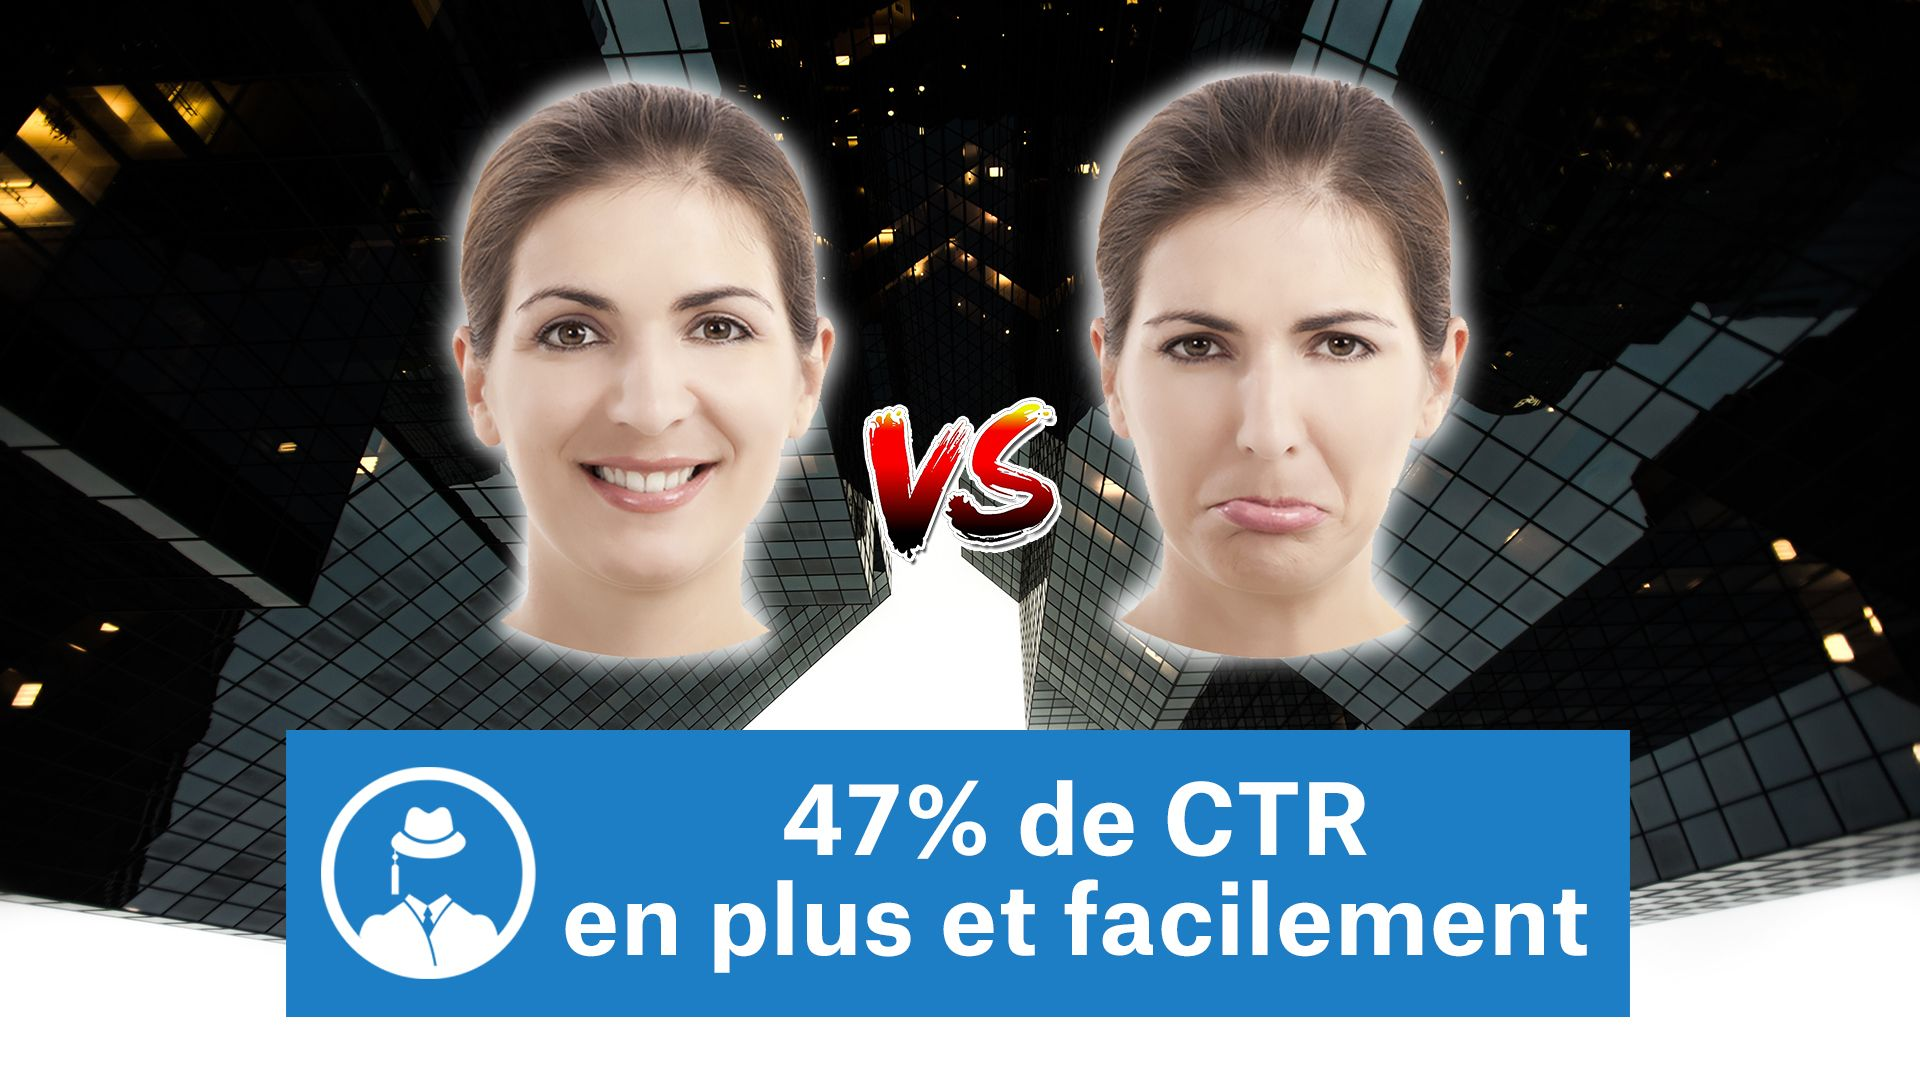 47% de CTR en plus facilement [98% ne l'utilisent pas] #GrowthHacking #WebMarketing #FormationGrowthHacking #CentreDeFormationFrance #TunnelAARRR #AARRR #SocialMedia #CommunityManagement #SEO #MarketingDigital #SiteWeb